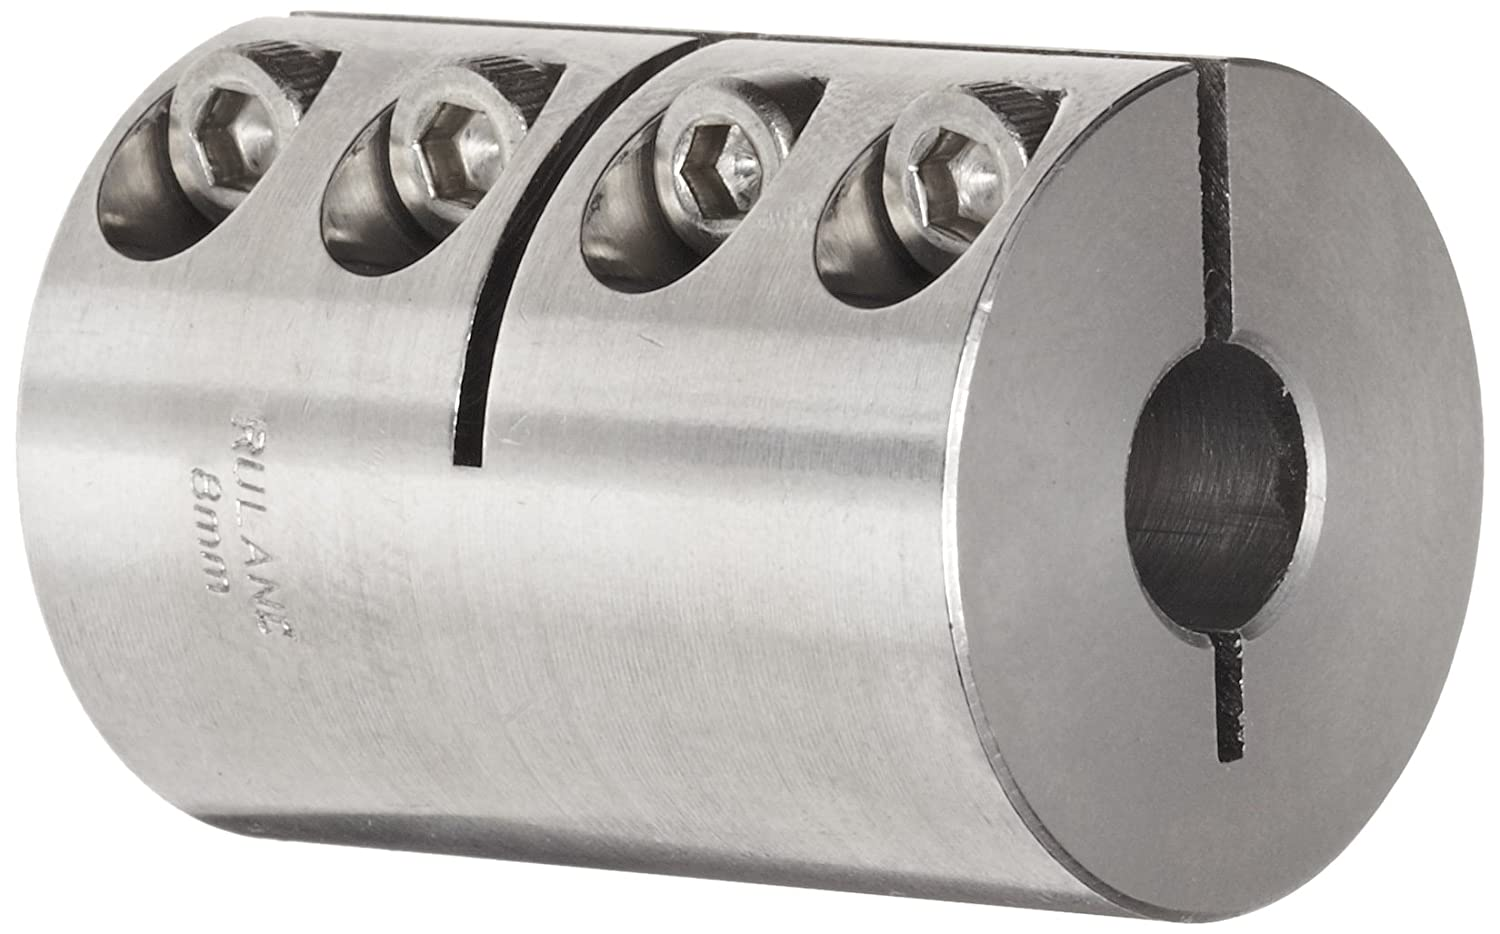 Metric 50mm Length 16mm Bore A Diameter 16mm Bore B Diameter Stainless Steel Ruland MCLX-16-16-SS One-Piece Clamping Rigid Coupling 34mm OD